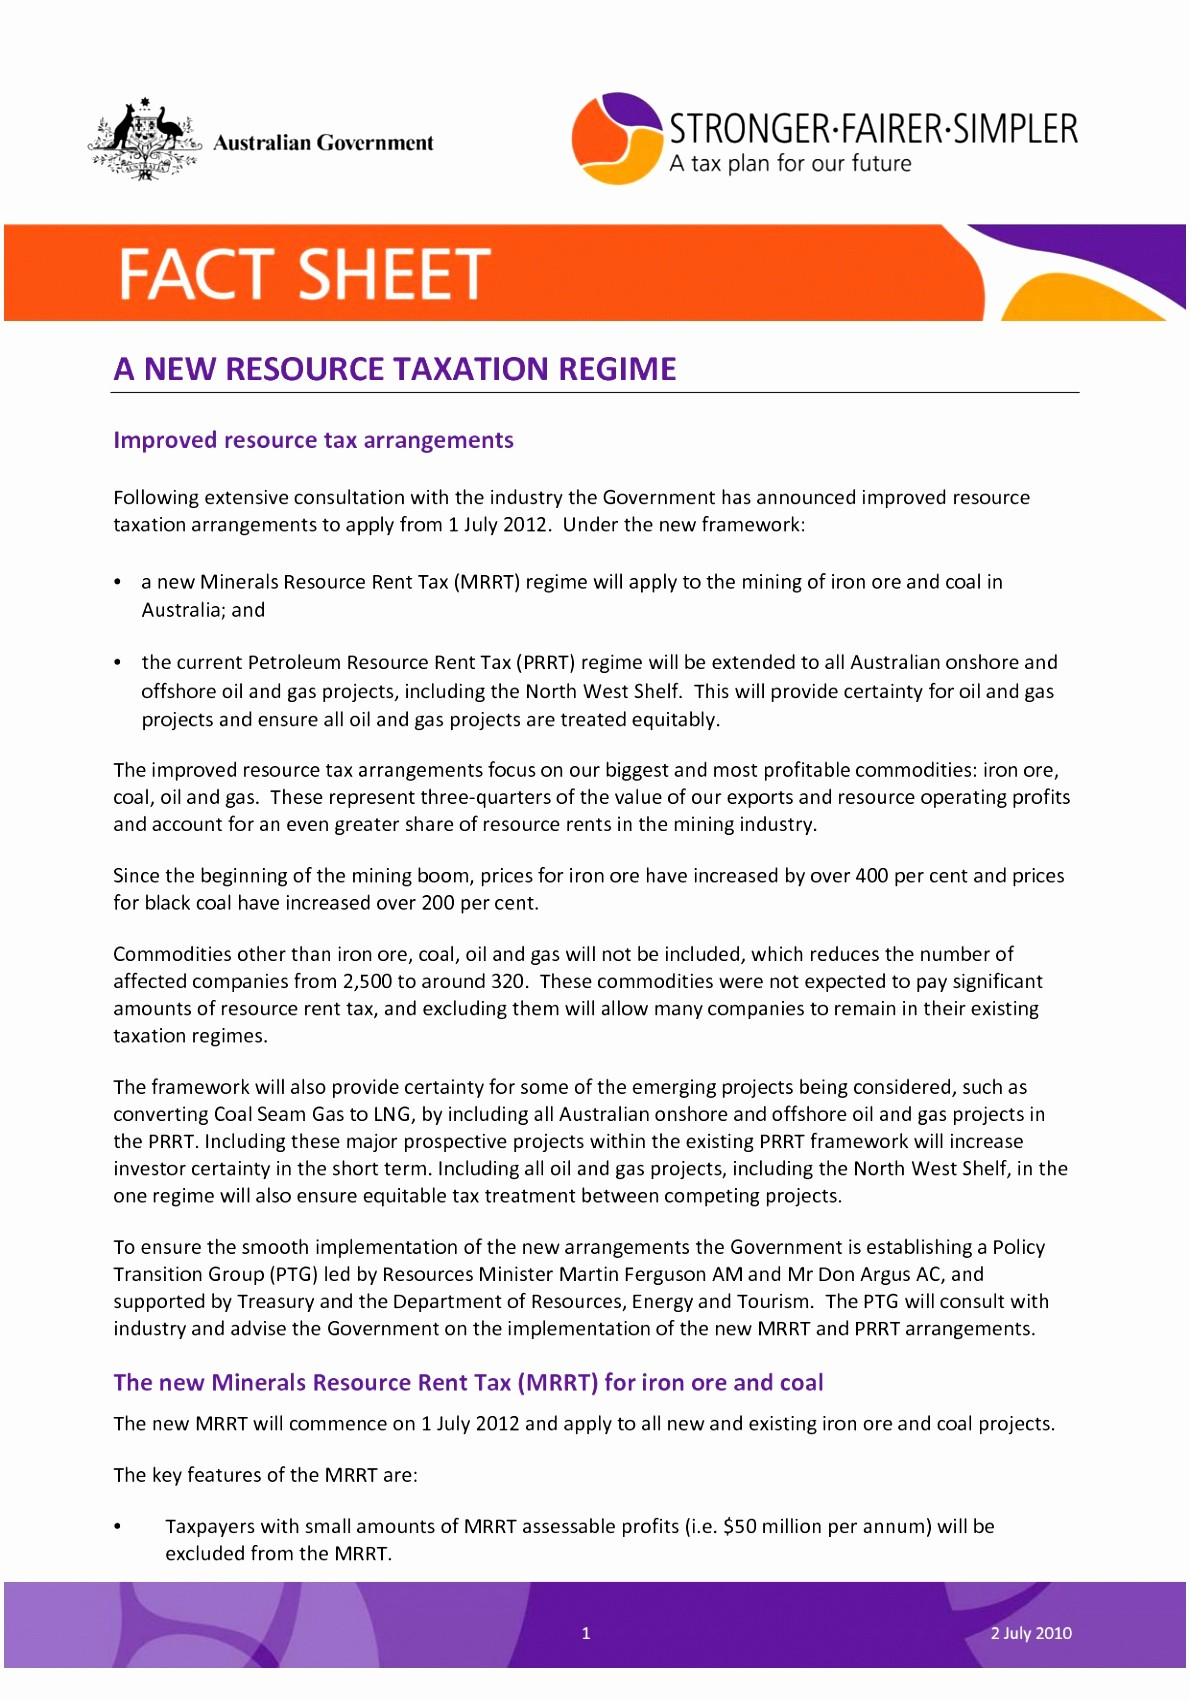 Fact Sheet Templates Microsoft Word Unique 6 Fact Sheet Template Microsoft Word Pupwu